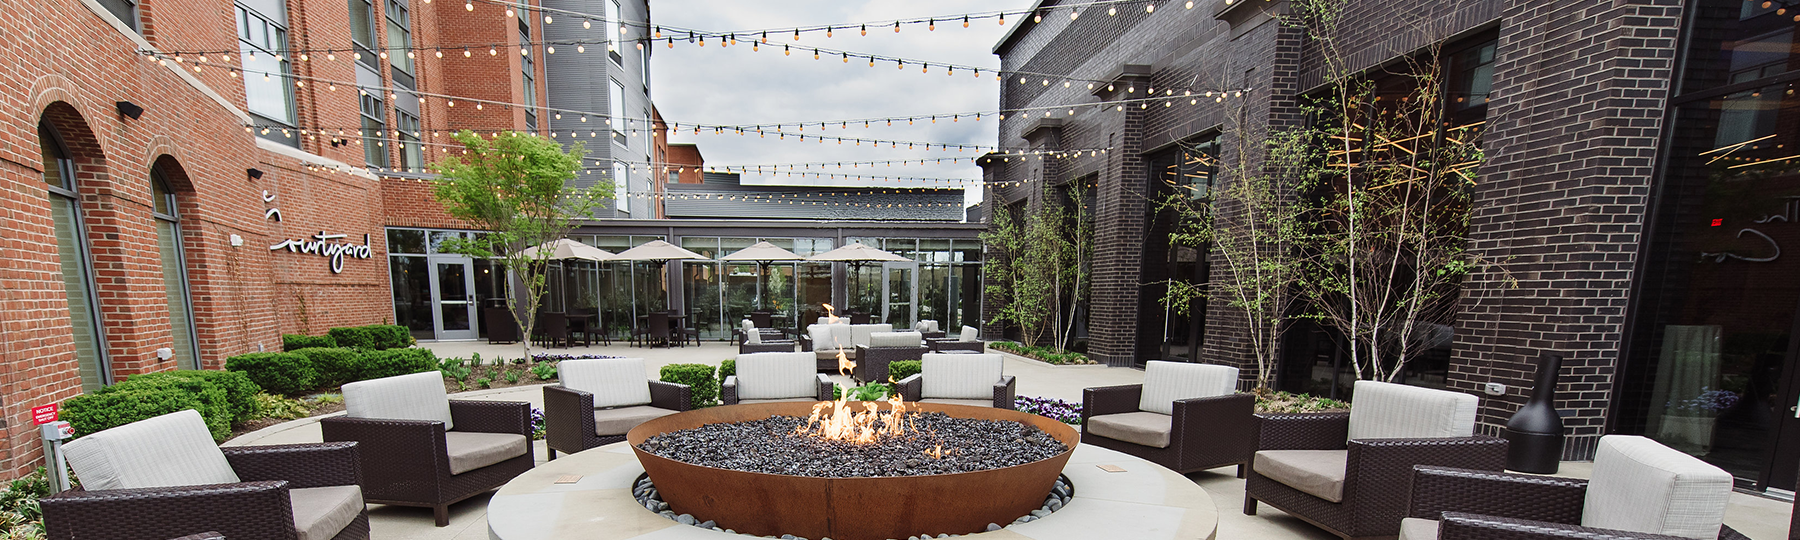 Outdoor patio event space with firepit